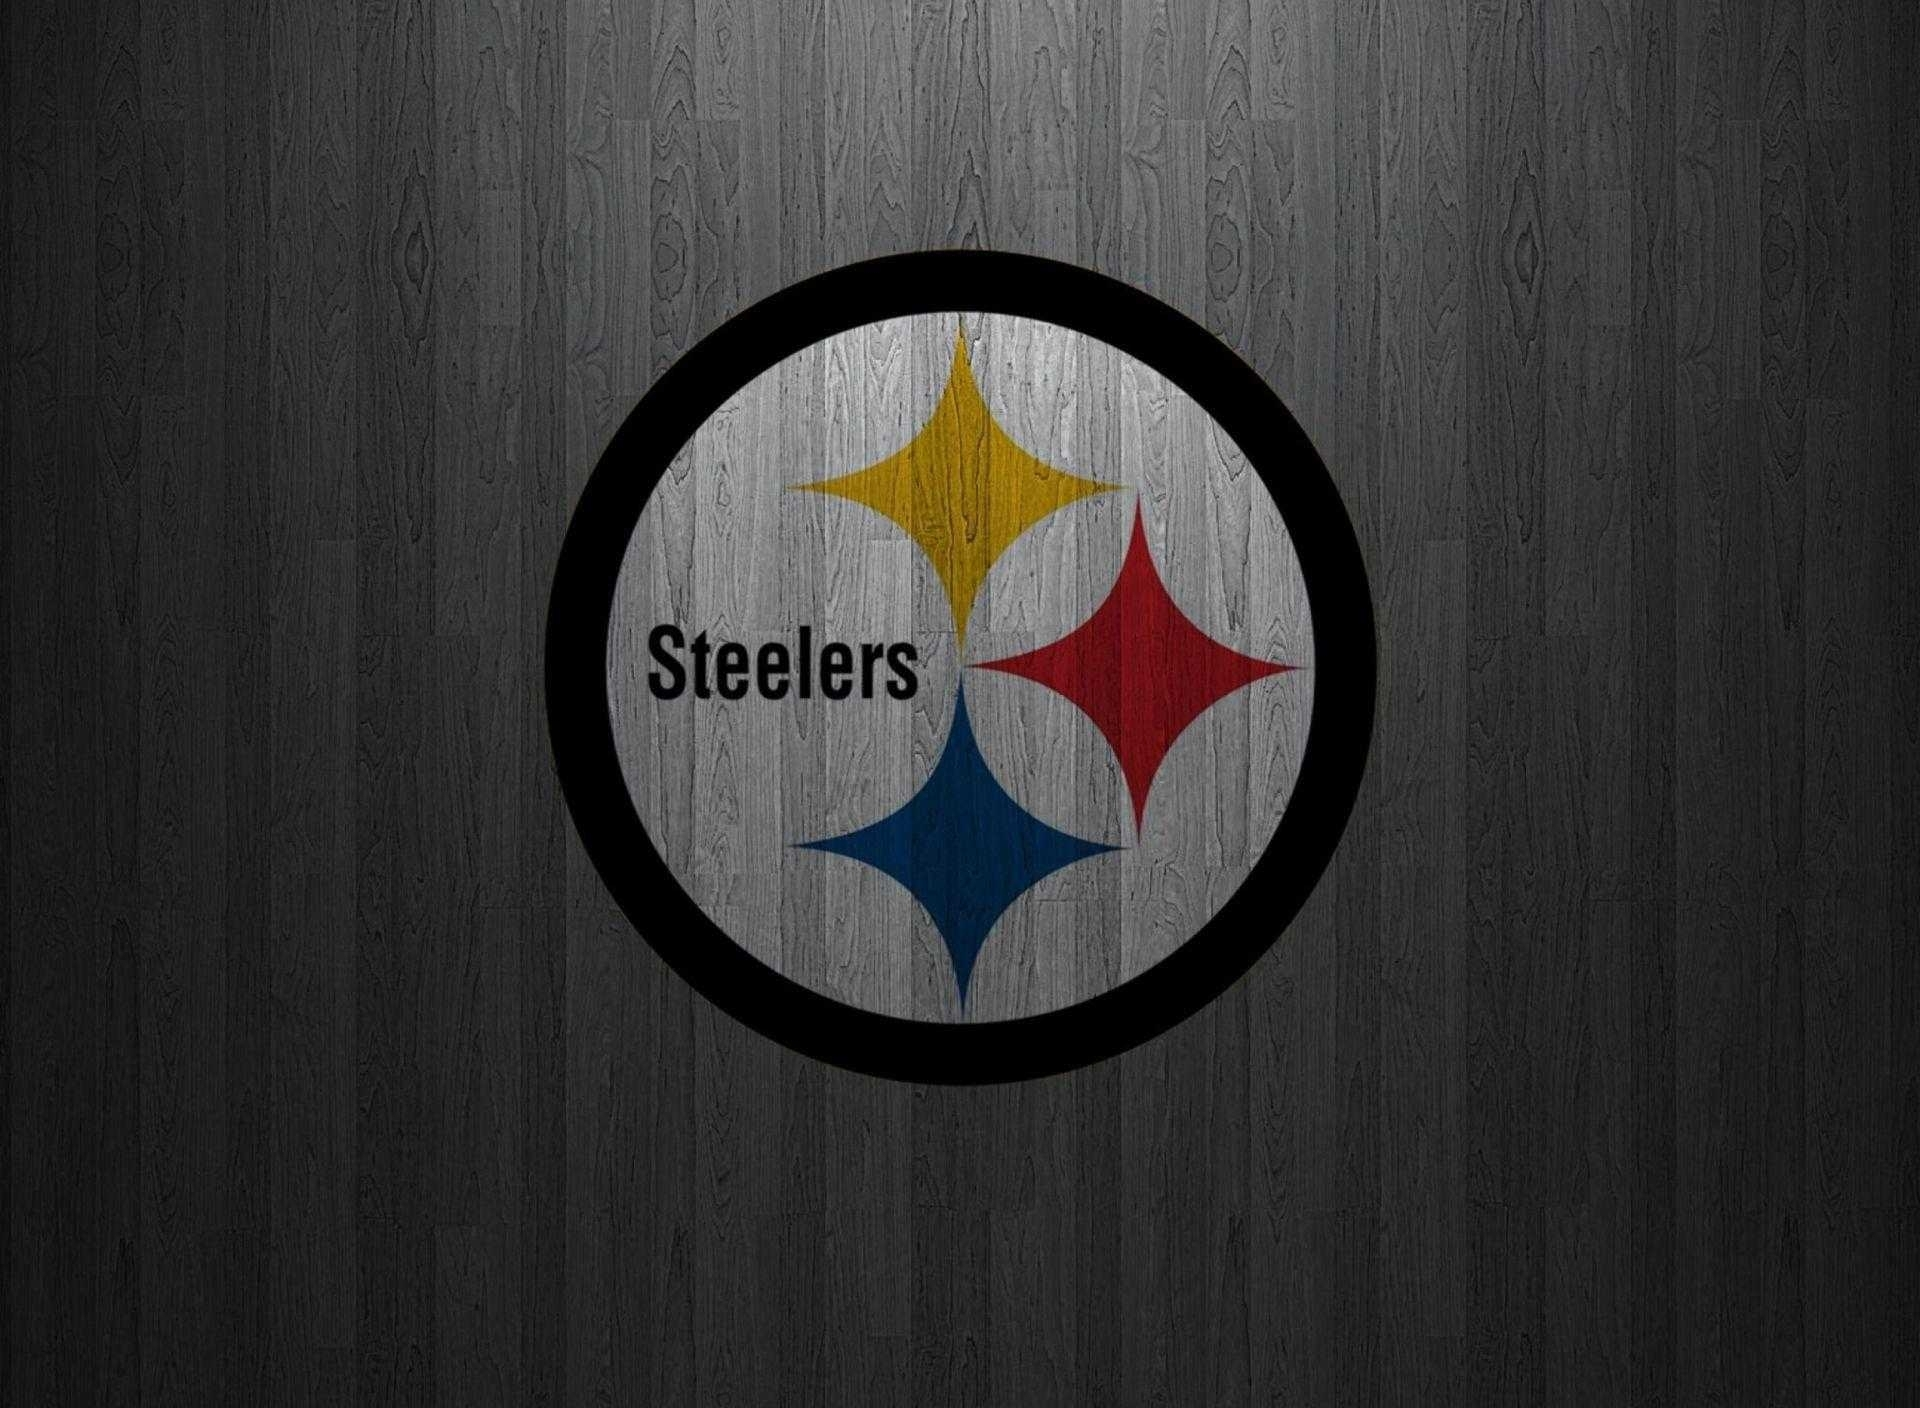 4k desktop for pittsburgh steelers wallpaper hd pc | wallvie